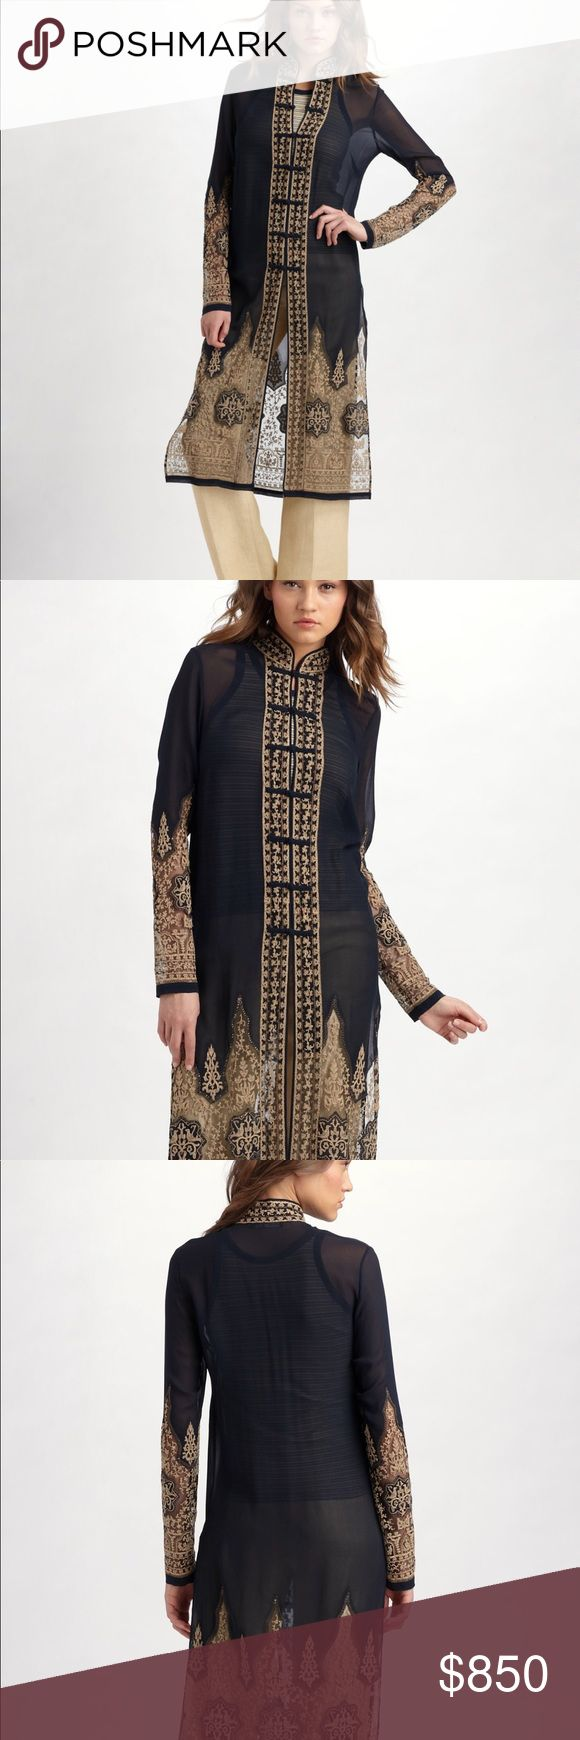 Ralph Lauren Cardigan Silk Duster!!!!!!!!!!!!!!! This romantic silk silhouette evokes Asian influence with intricate embroidery, a mandarin collar and tradition frog closures Ralph Lauren Blue Label Sweaters Cardigans